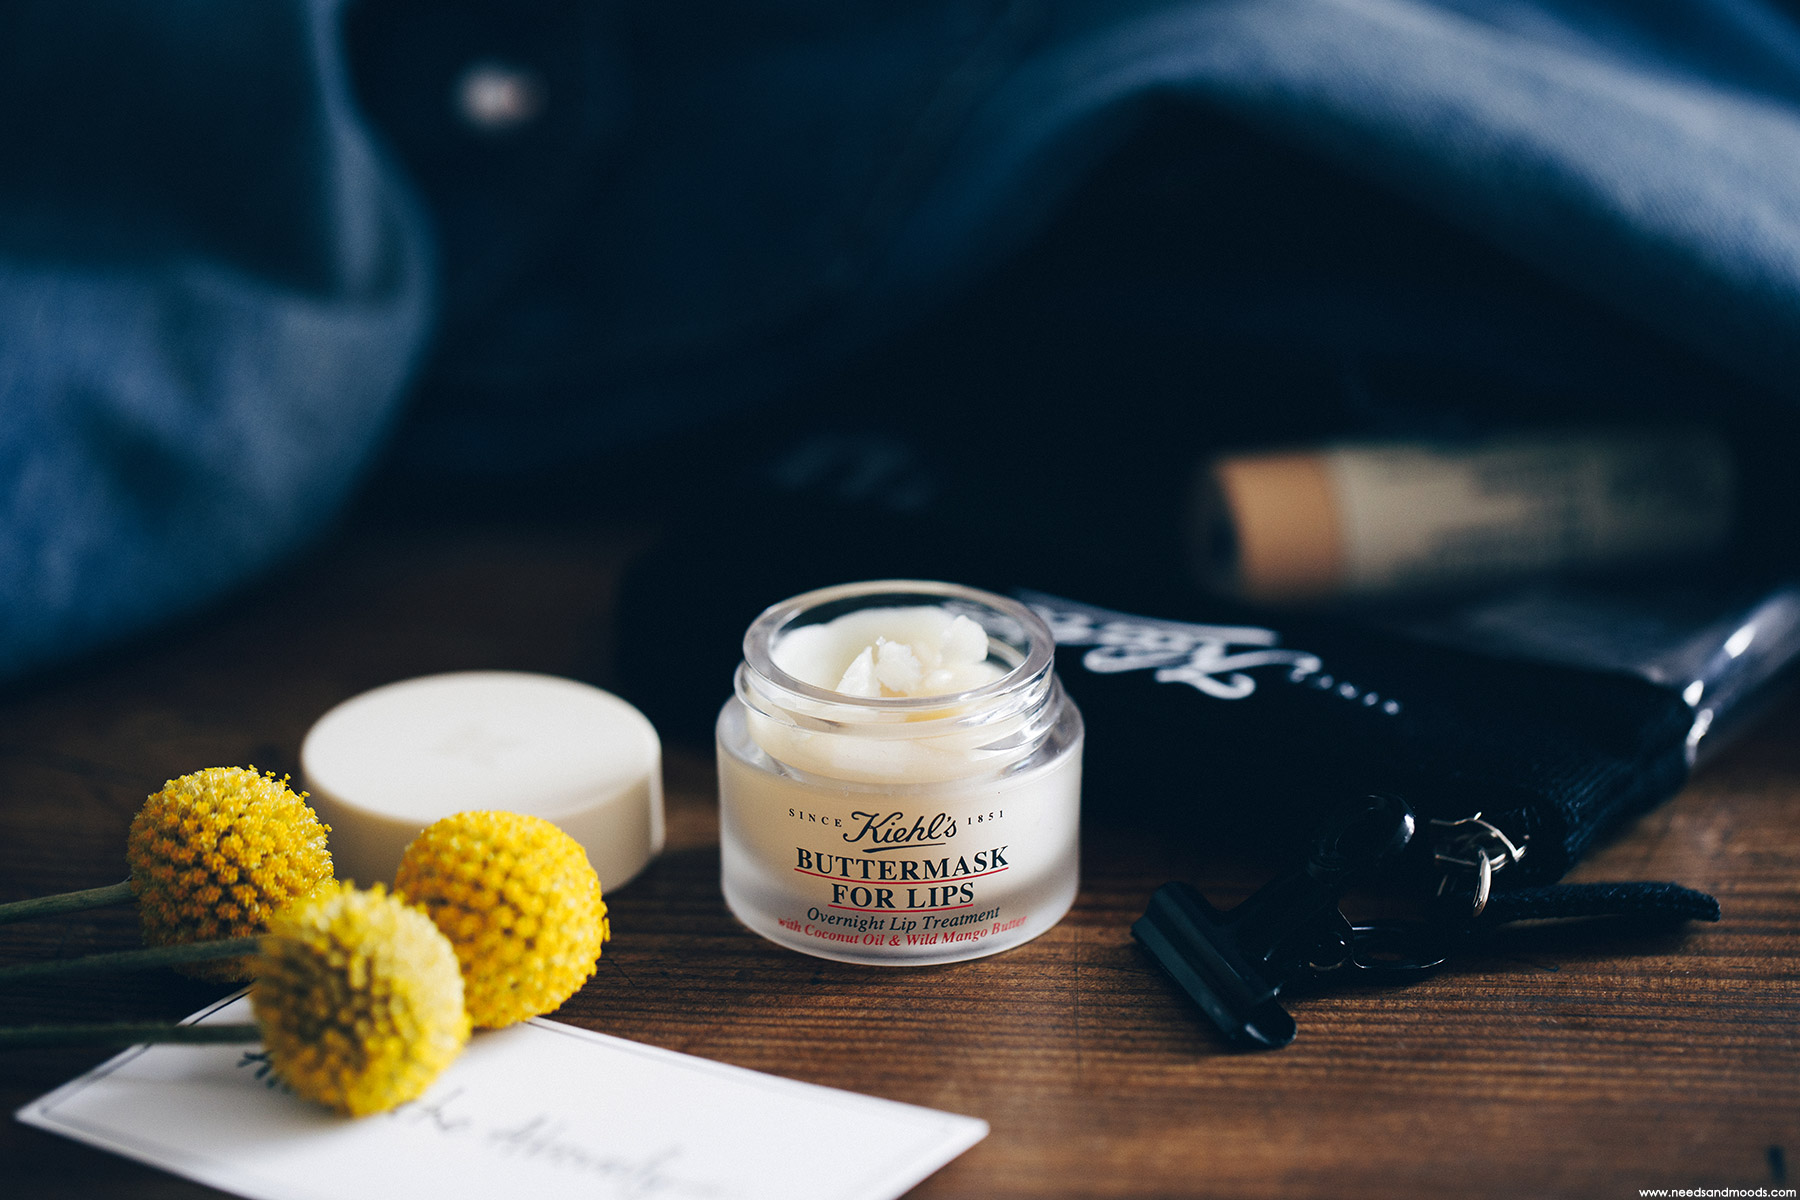 kiehls butter mask for lips avis